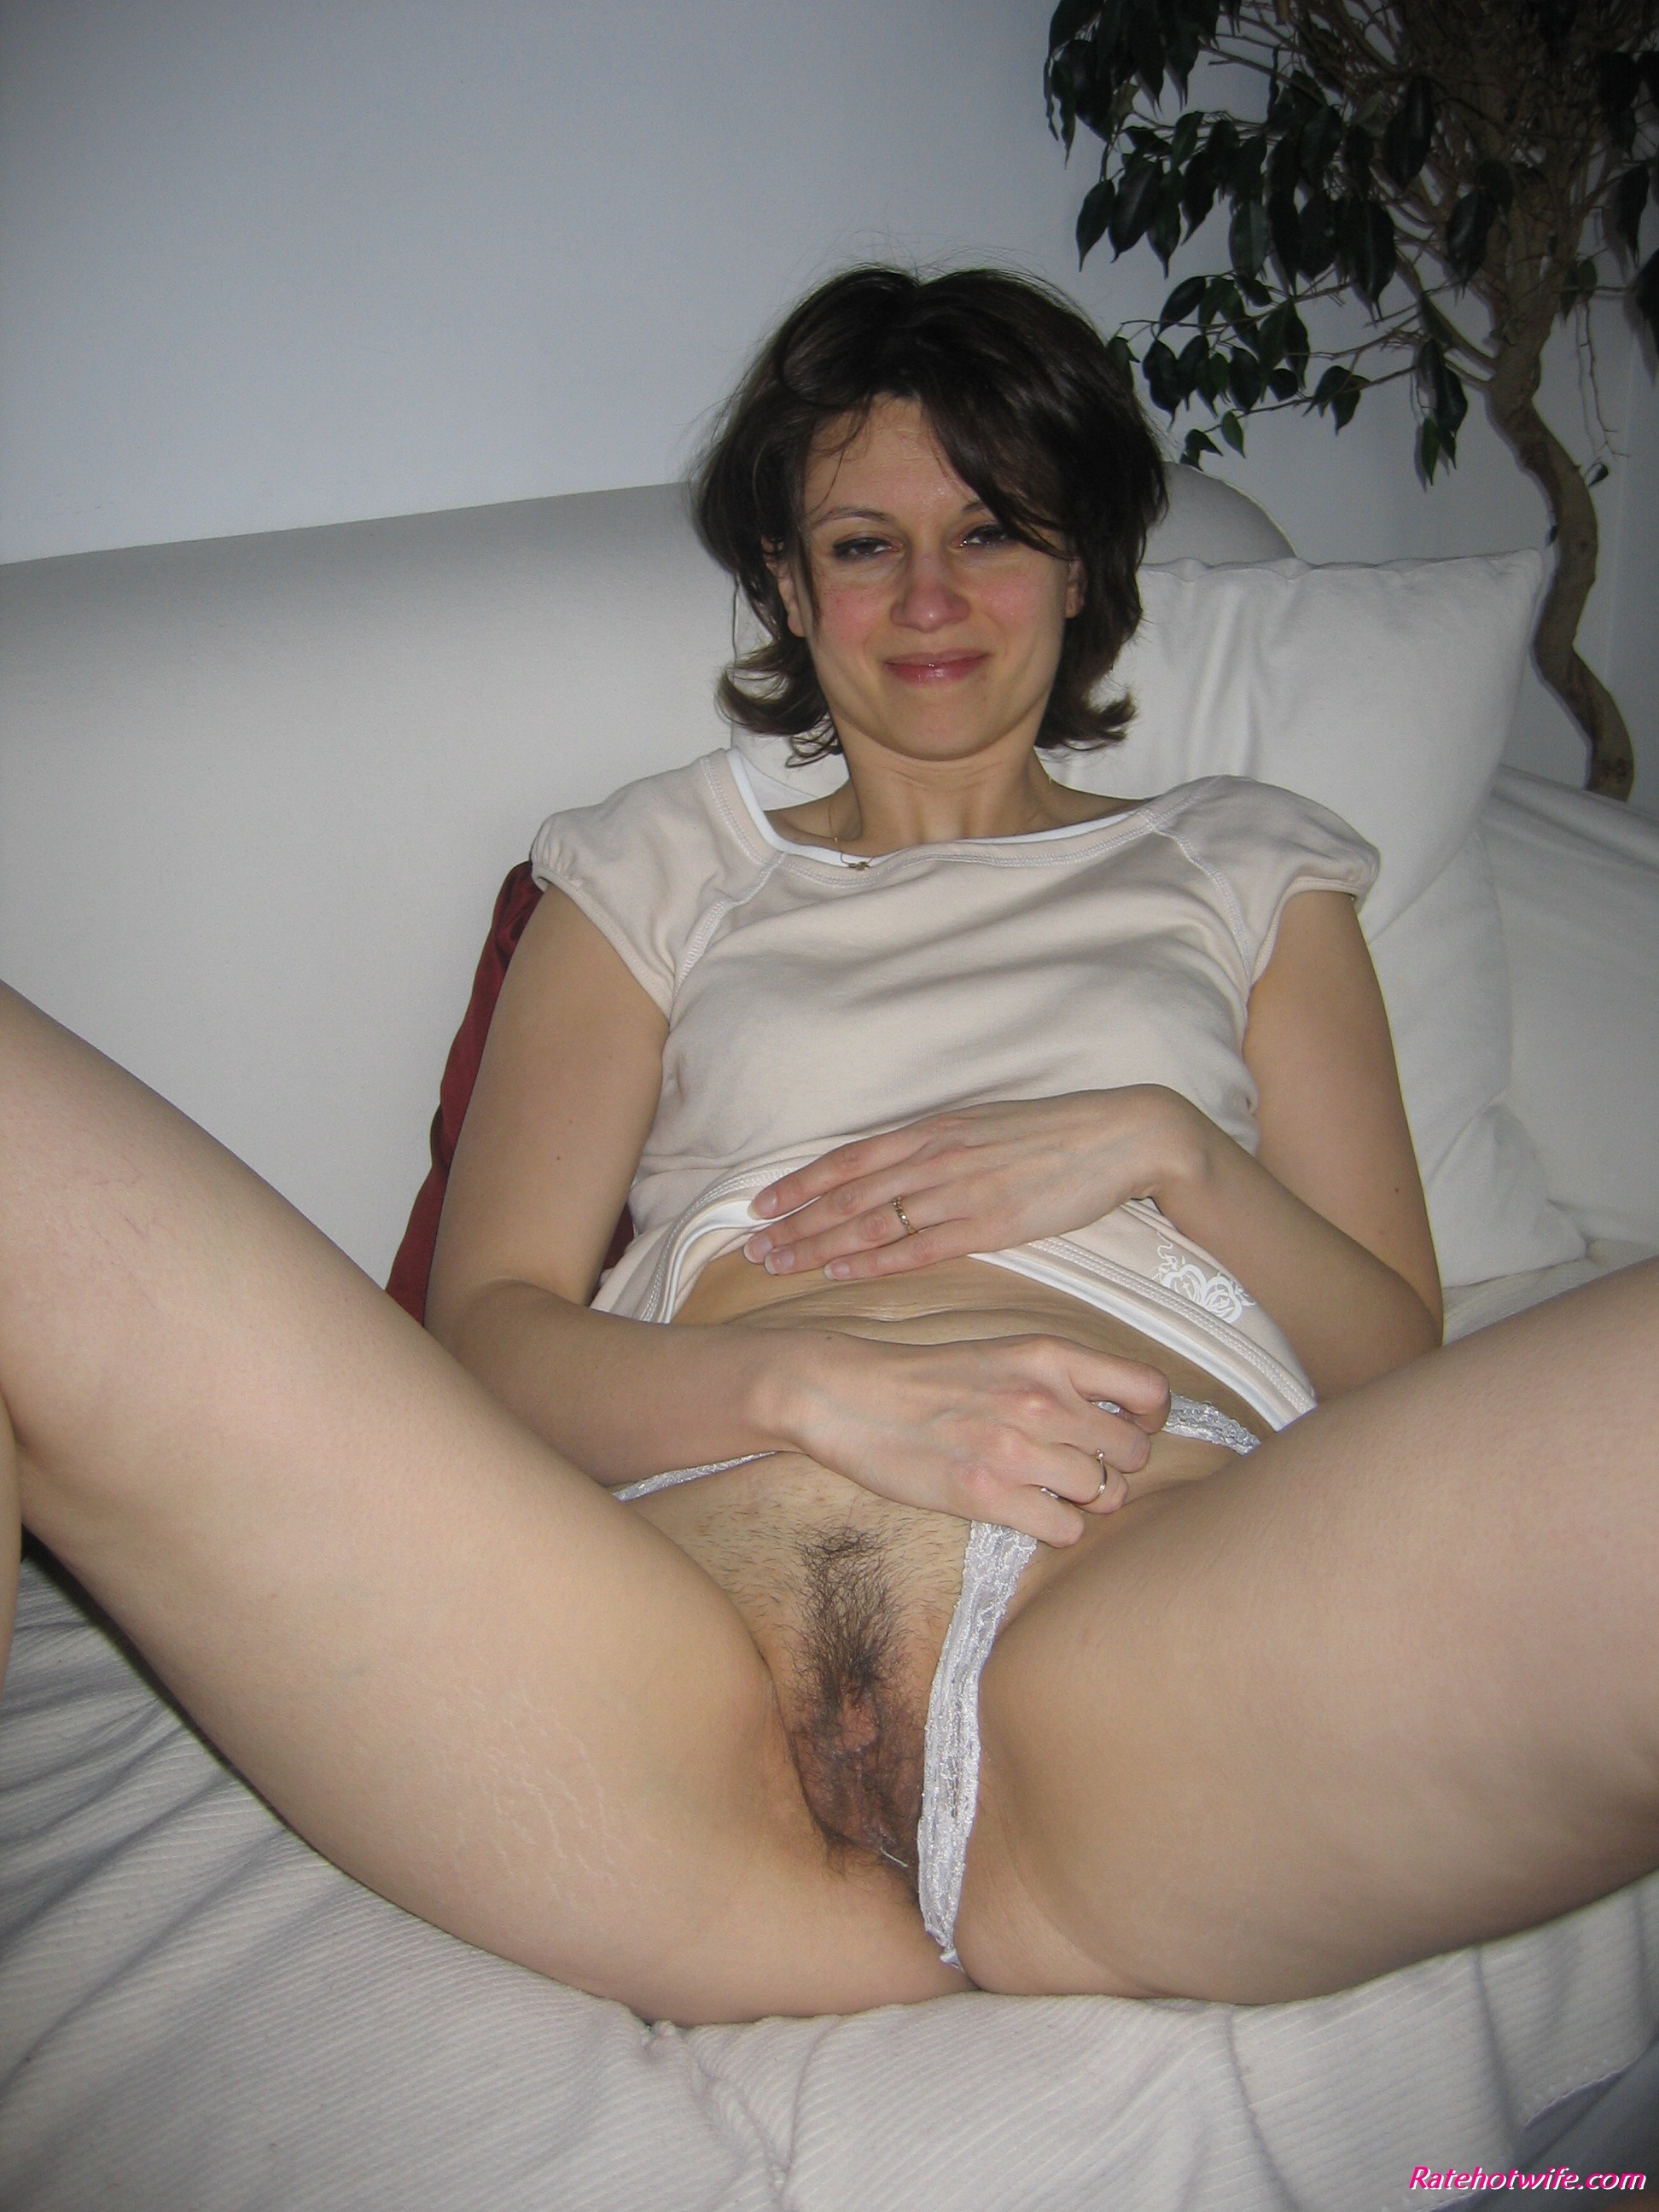 exposed and horny